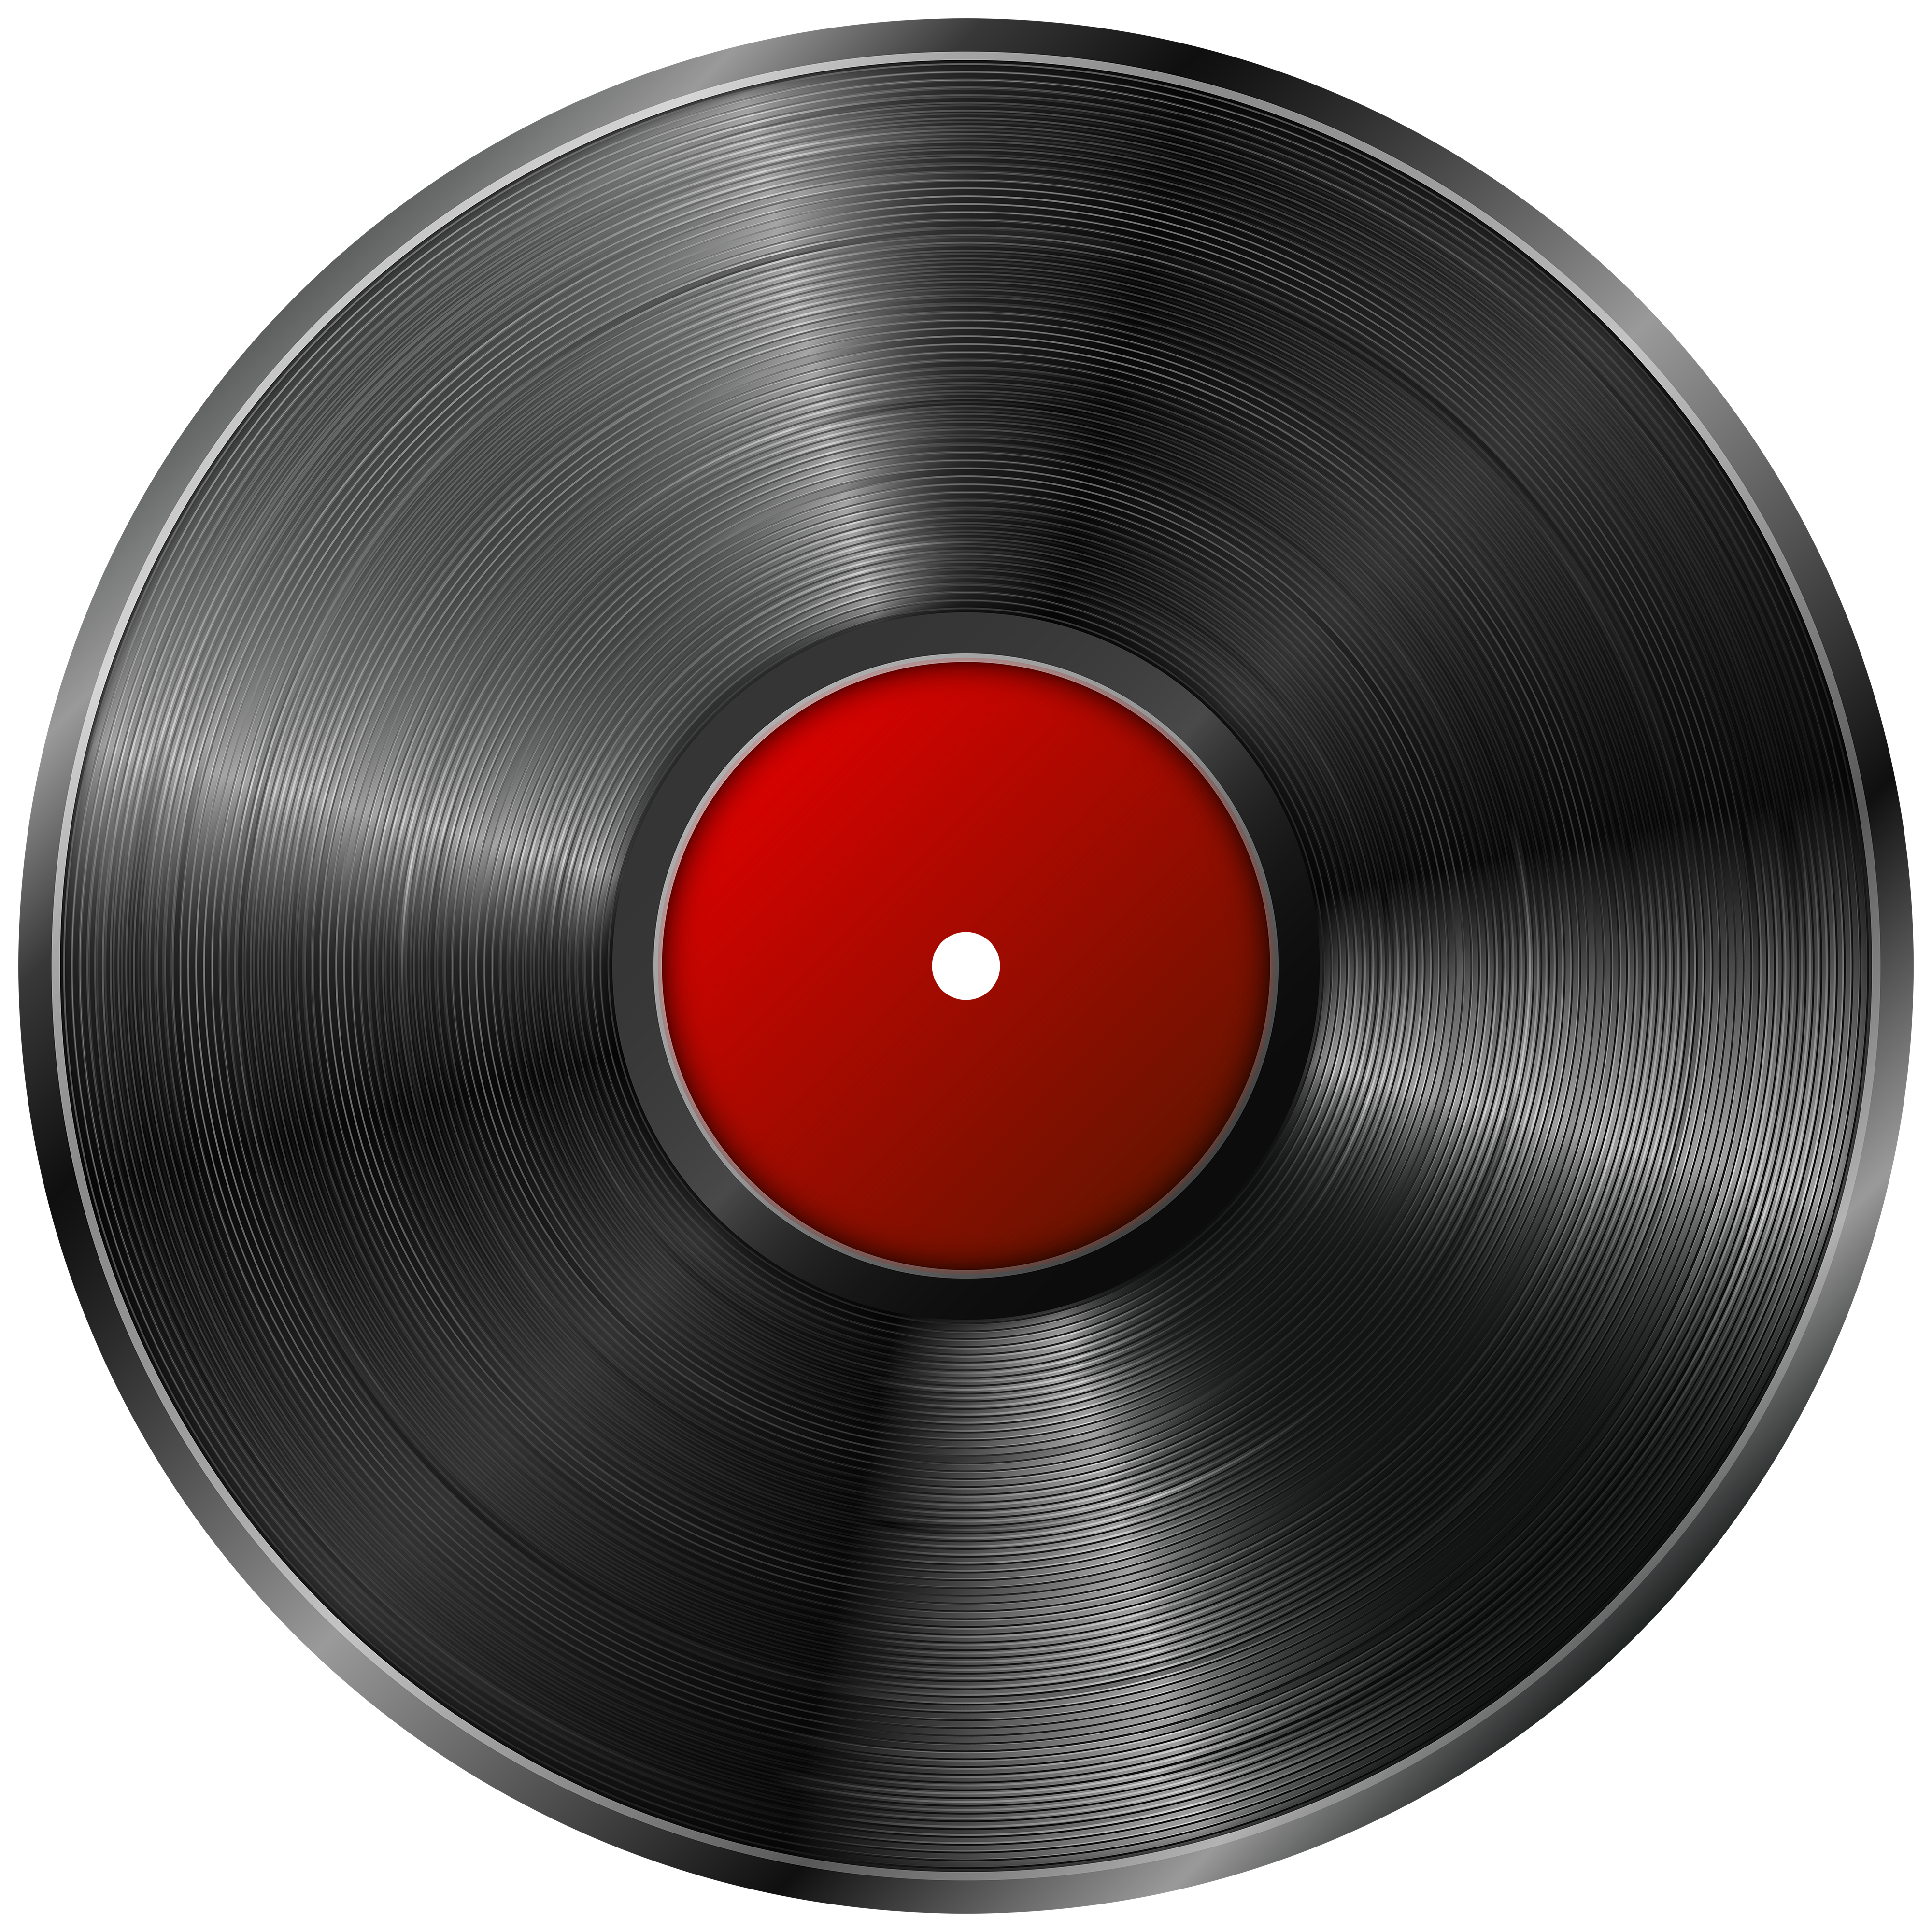 Record clipart transparent background. Gramophone vinyl lp png